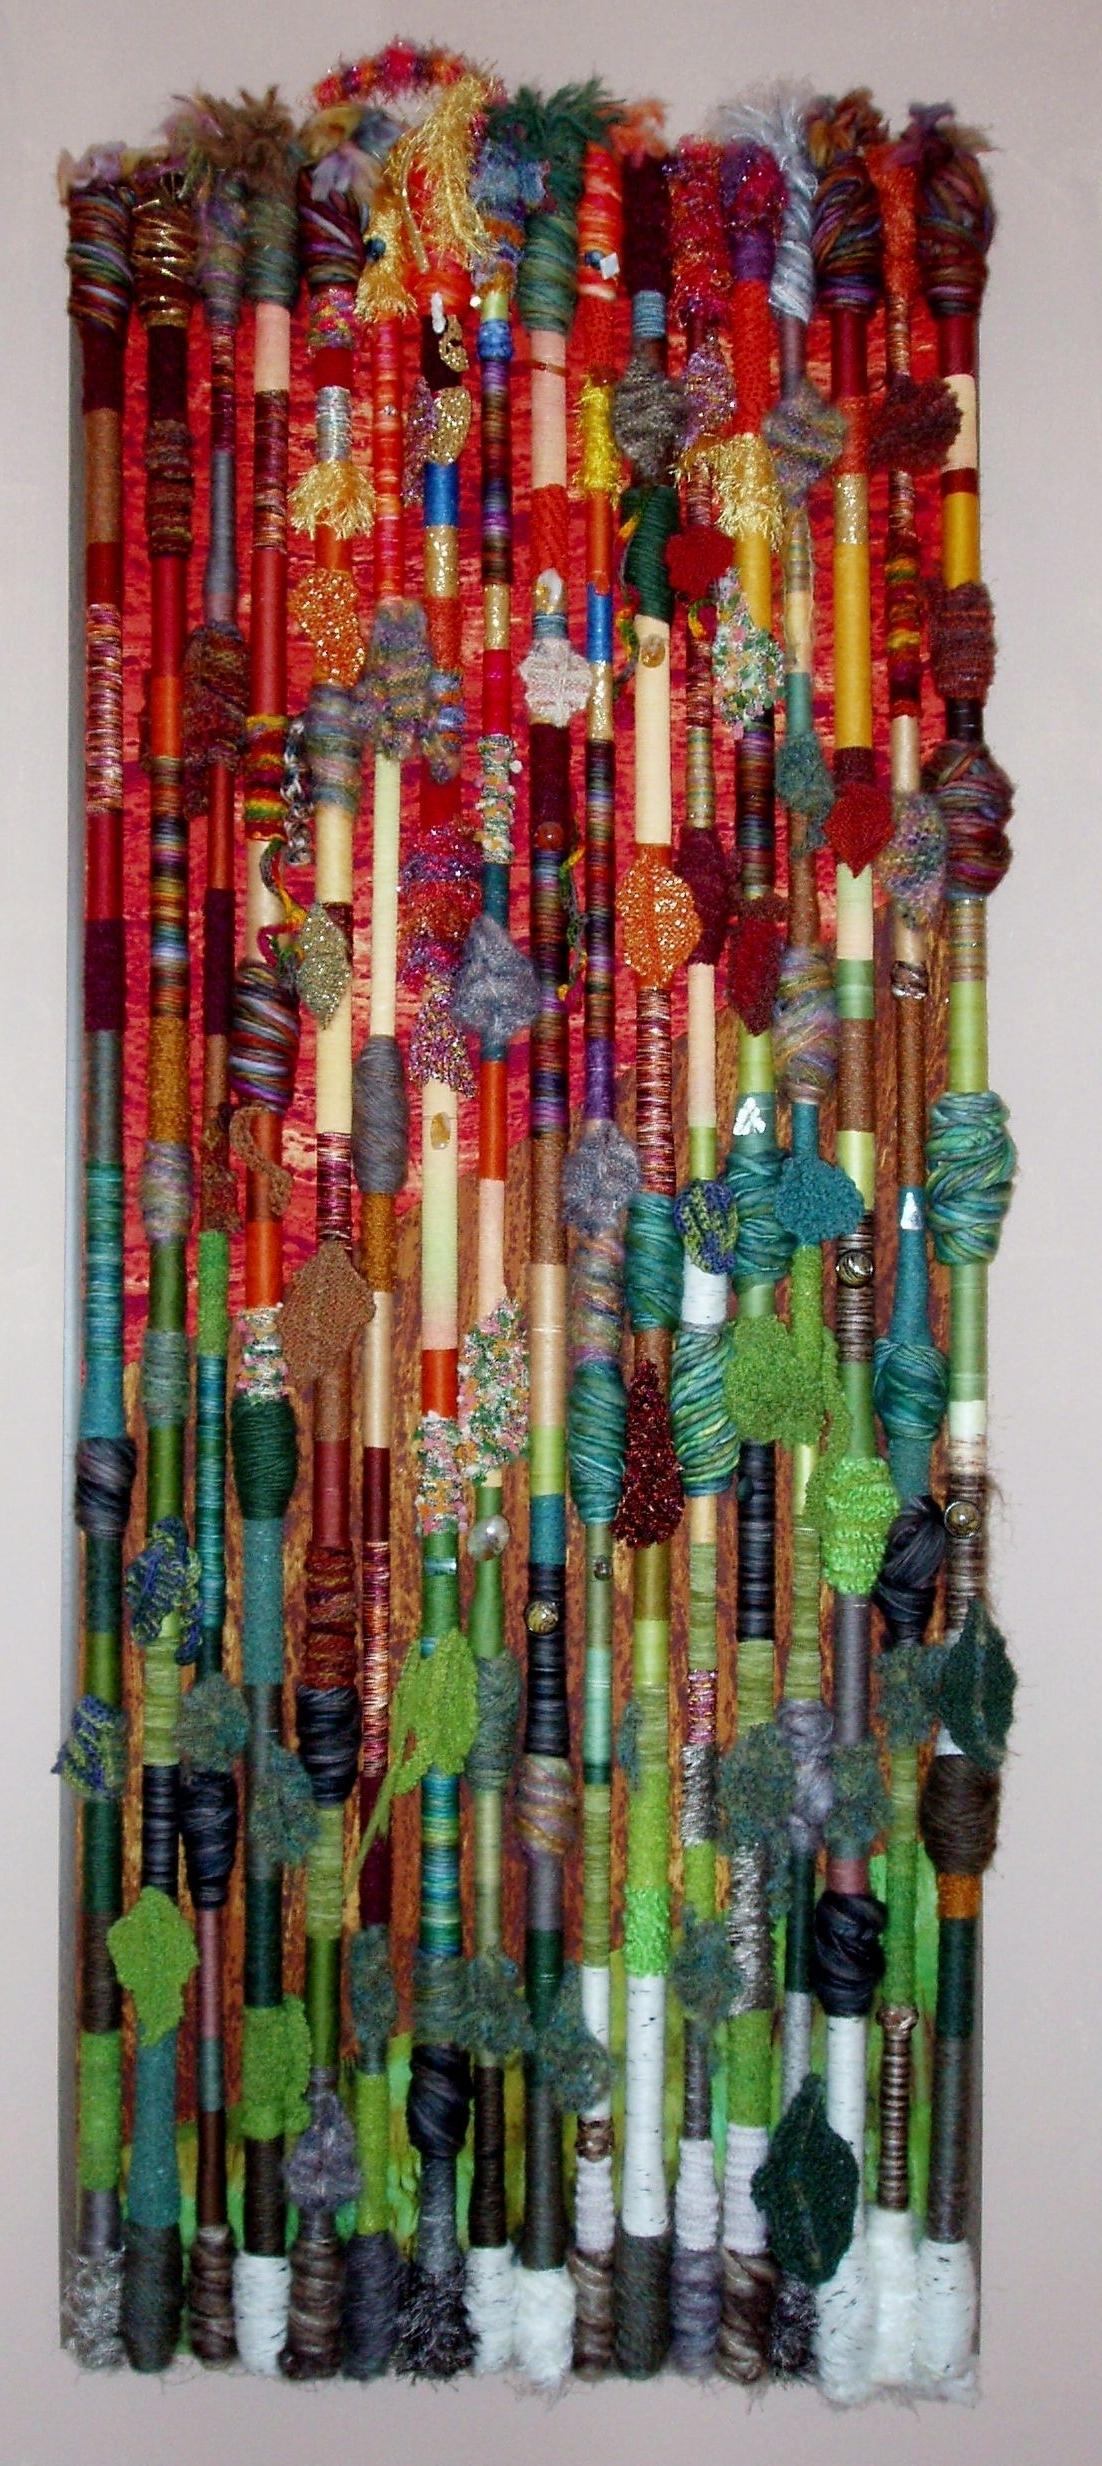 Abstract Textile Wall Art Inside Most Recently Released Fiber Art Wall Hanging – Fall In The Northland (View 4 of 15)